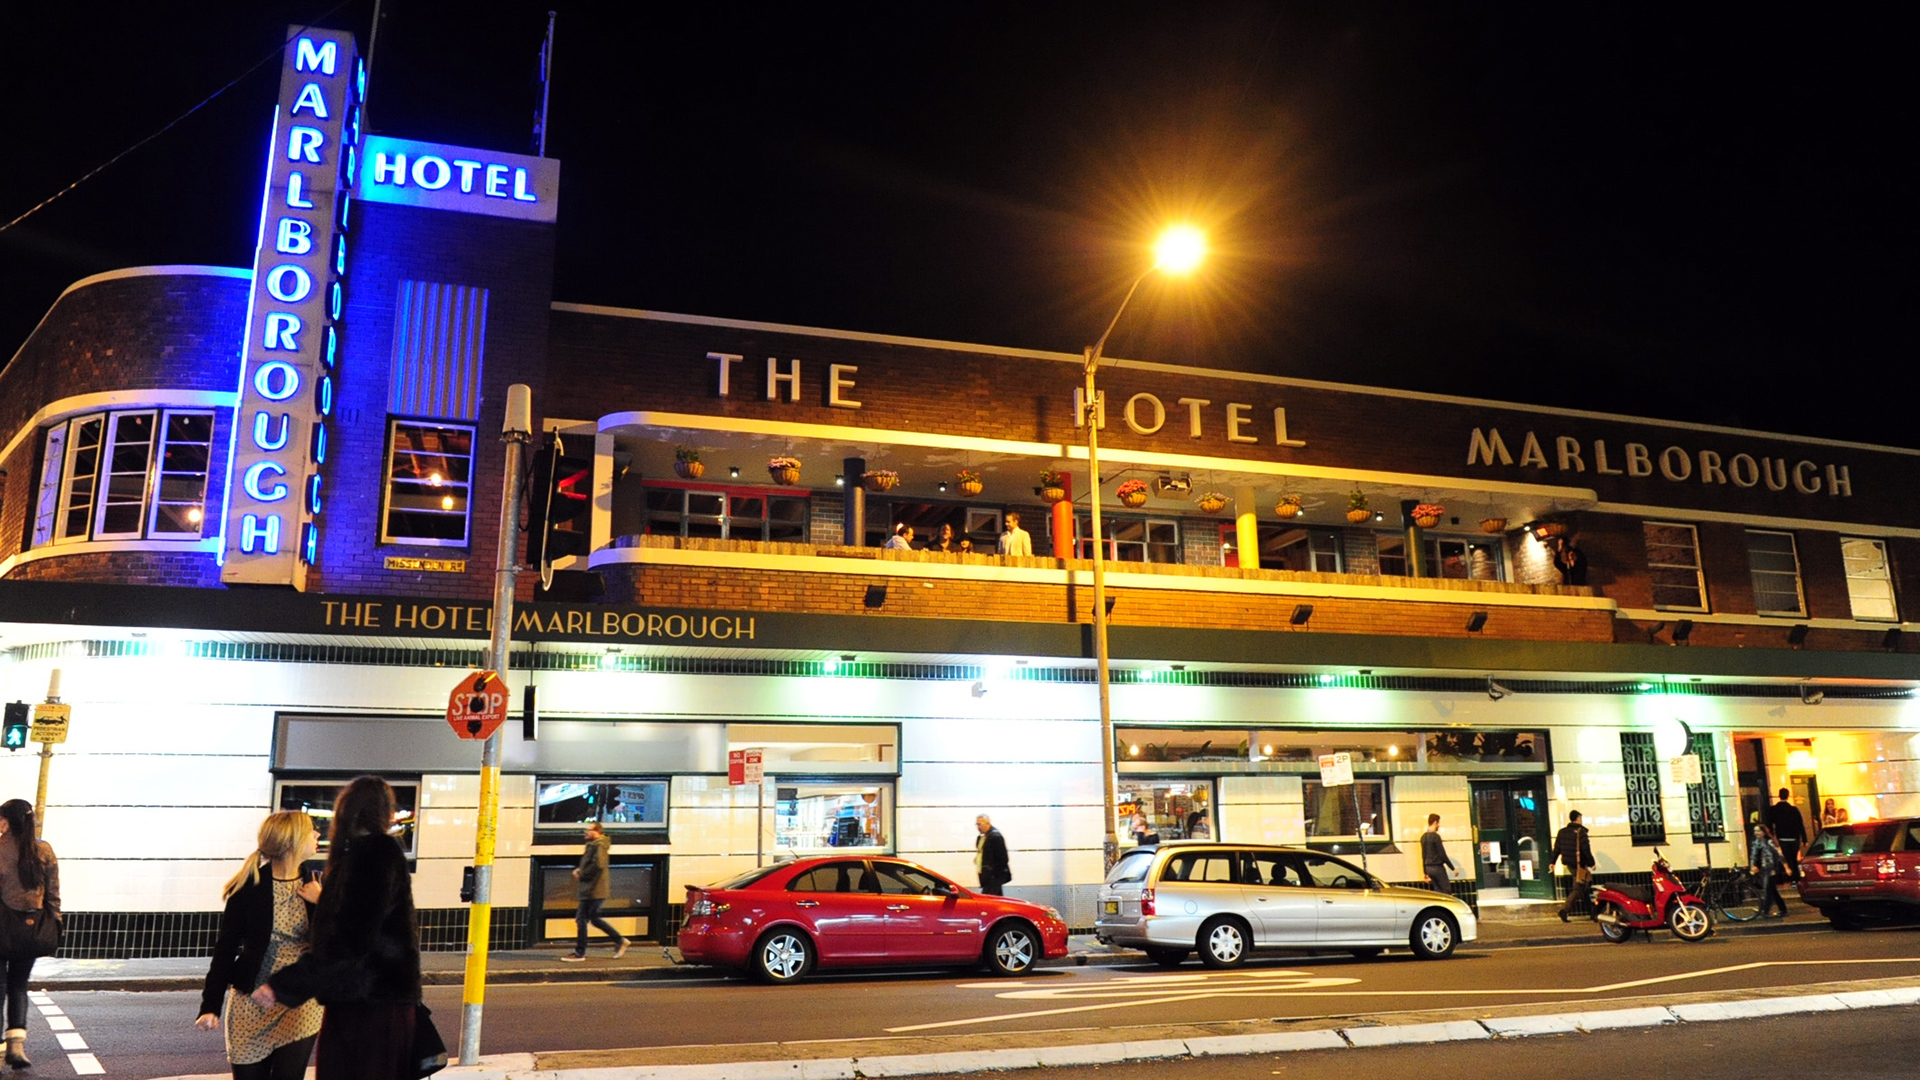 Marlborough Hotel in Newtown is one of the late-trading venues that has signed the accord